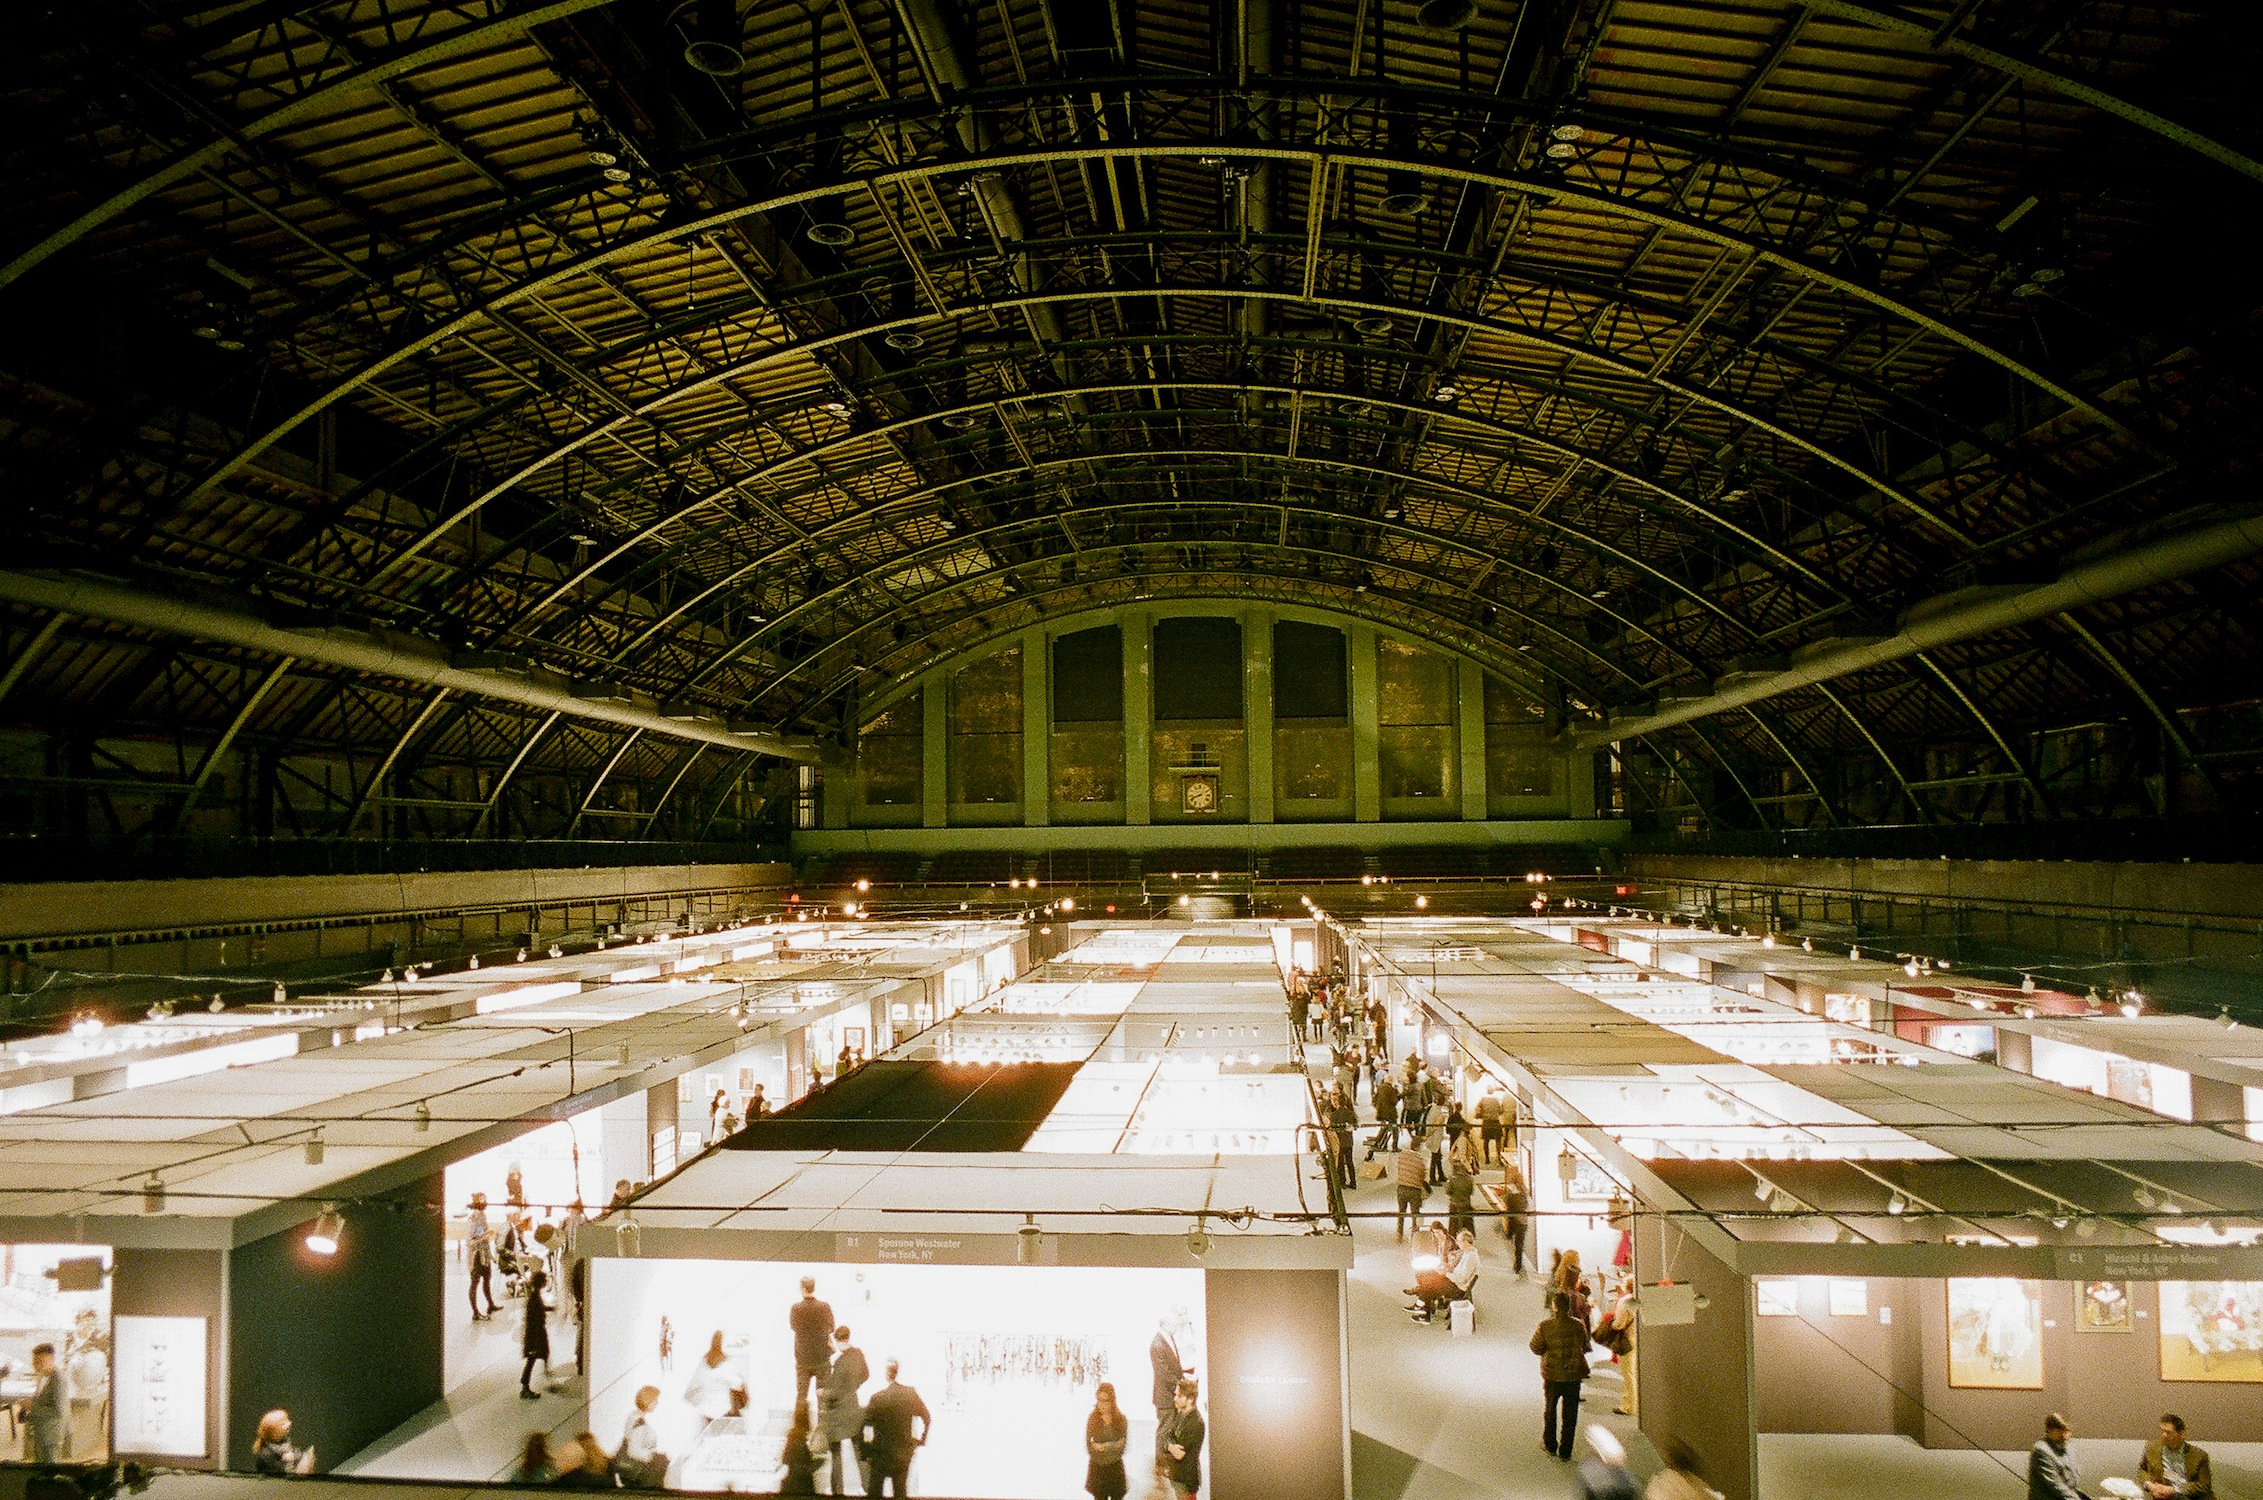 The 27th Annual Art Will Be At Park Avenue Armory This Year Is Show Thats Organized By Dealers Association Of America ADAA